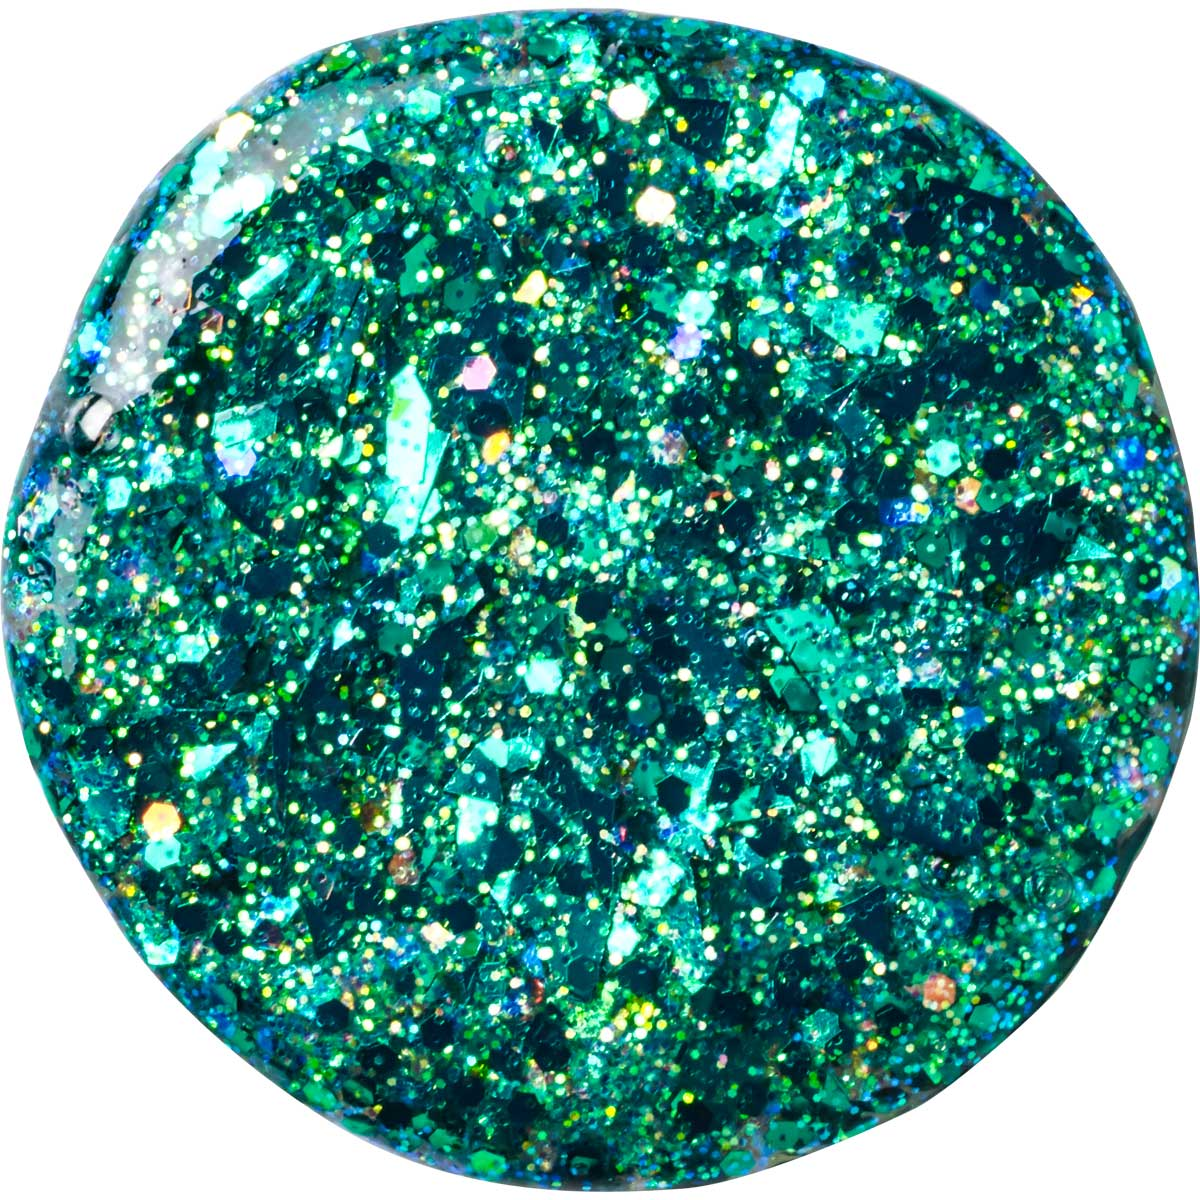 FolkArt ® Glitterific™ Acrylic Paint - Evergreen, 2 oz. - 5934